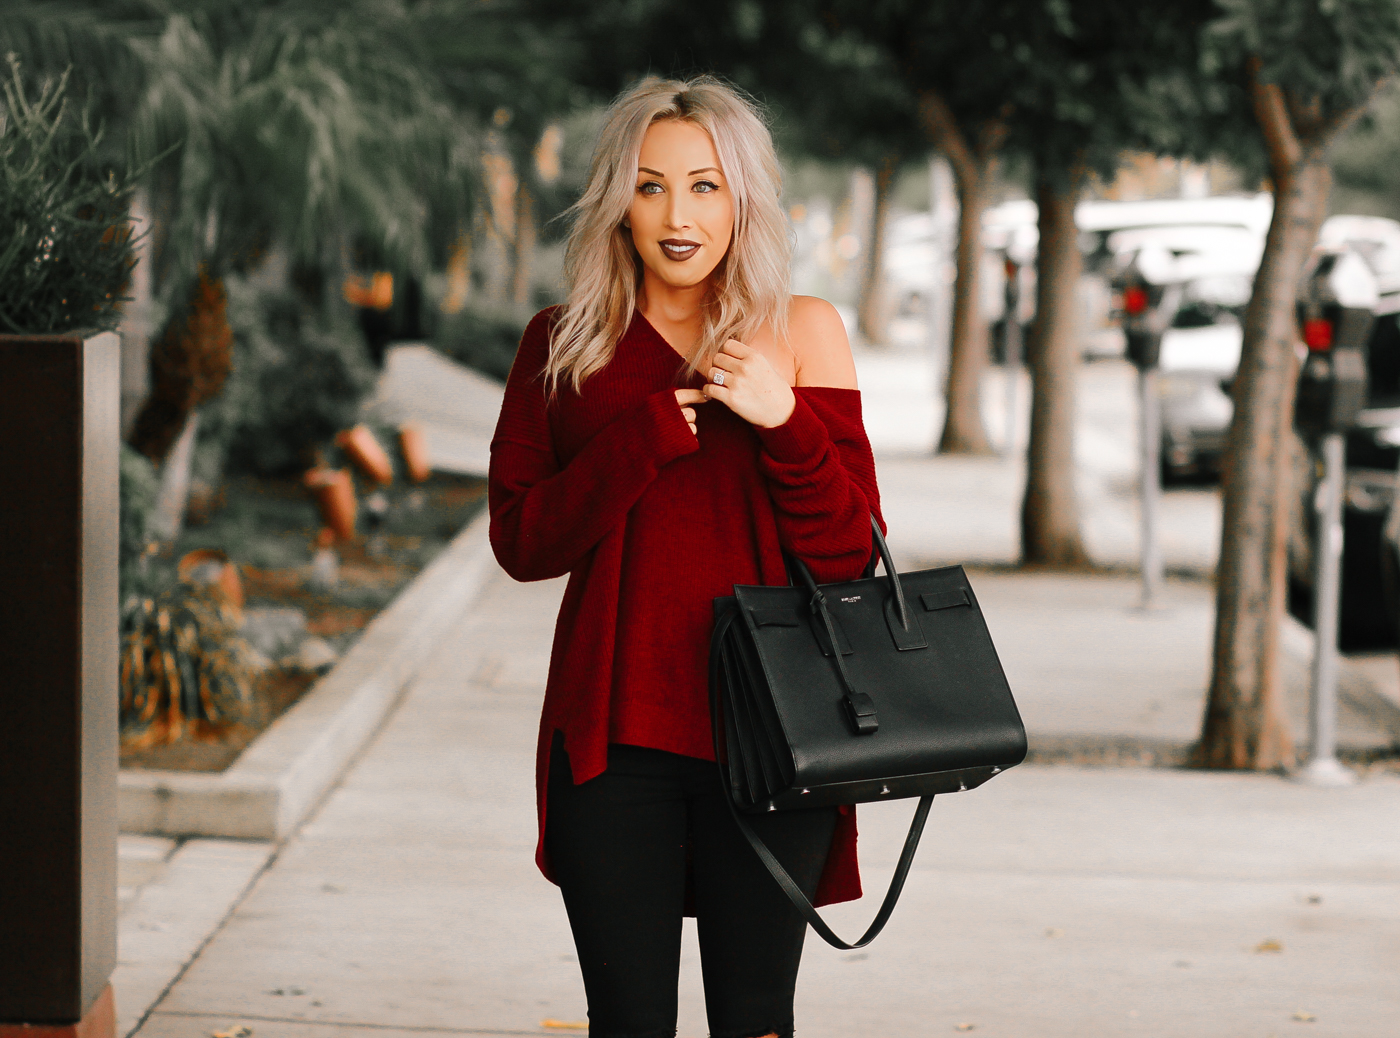 Blondie in the City | Burgundy Off The Shoulder Sweater | Black Saint Laurent Bag